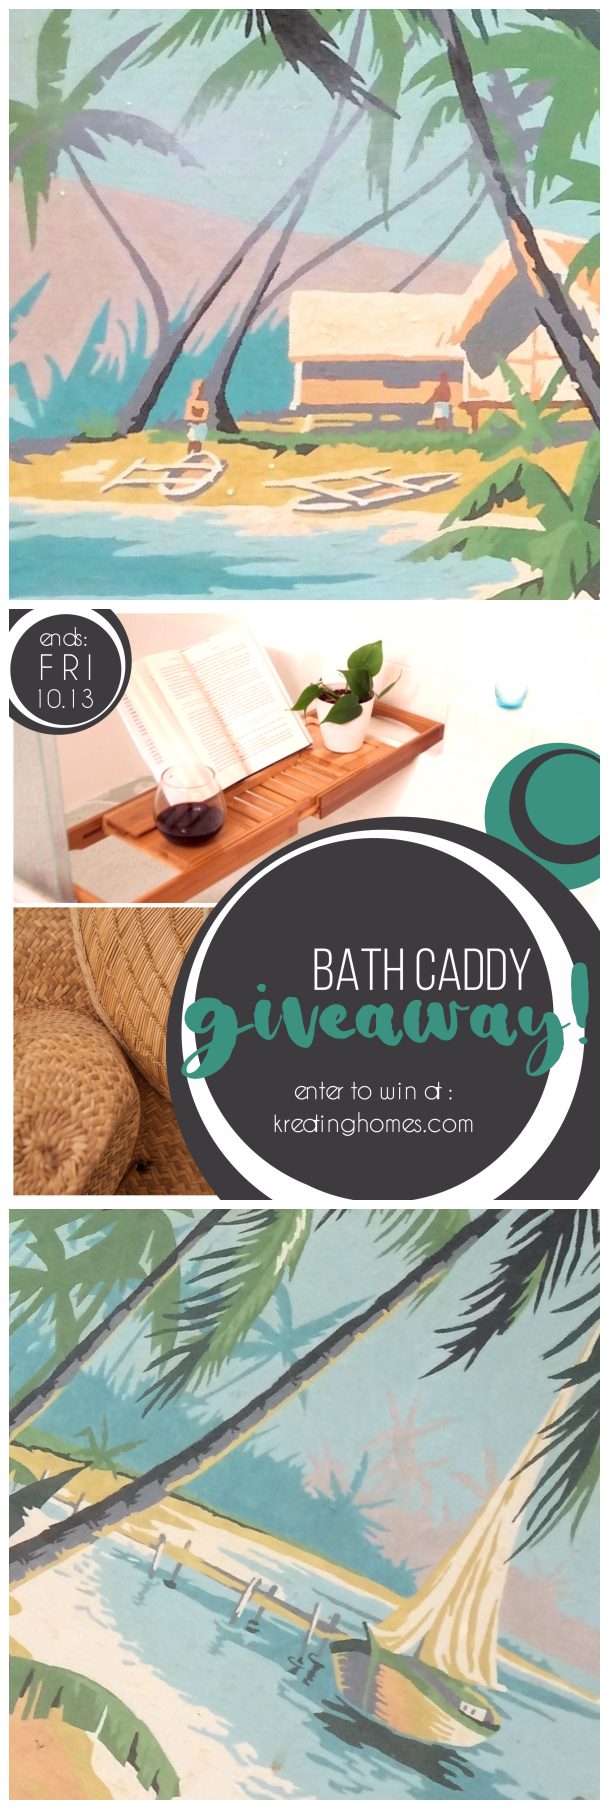 Bath Caddy Giveaway